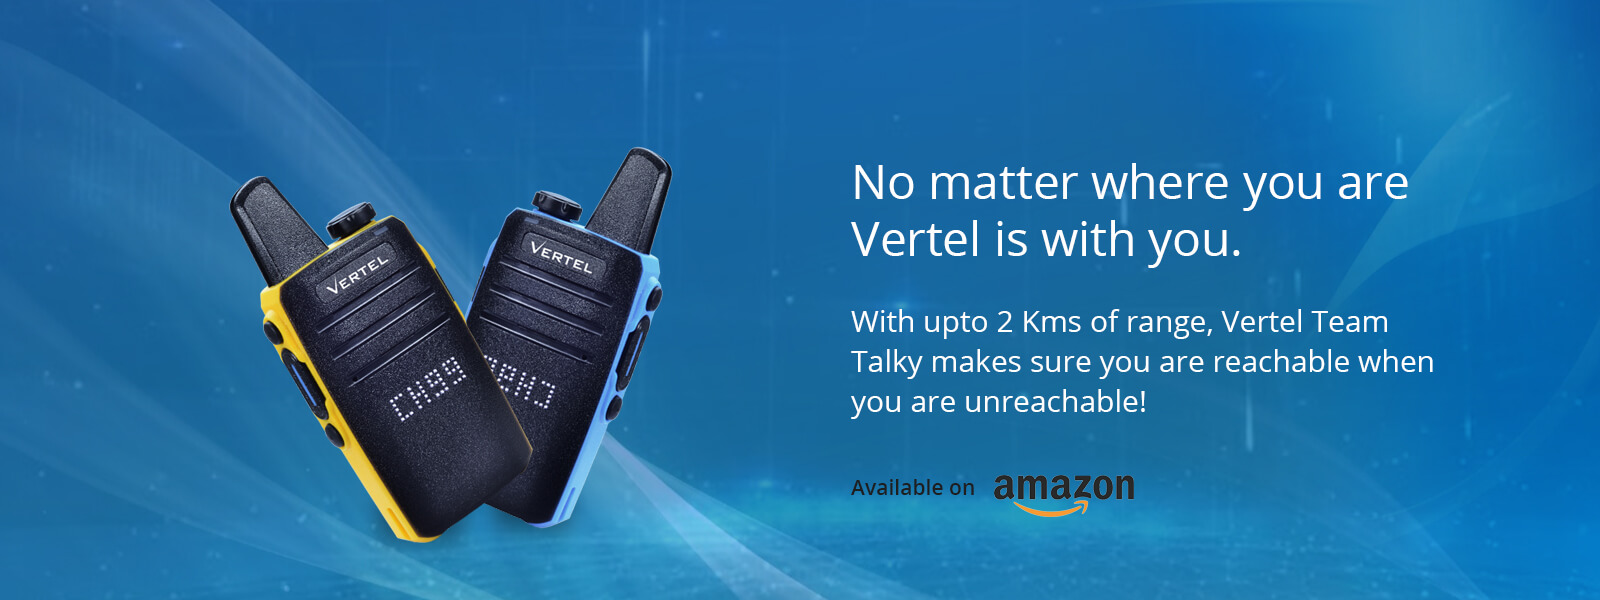 walkie Talky price